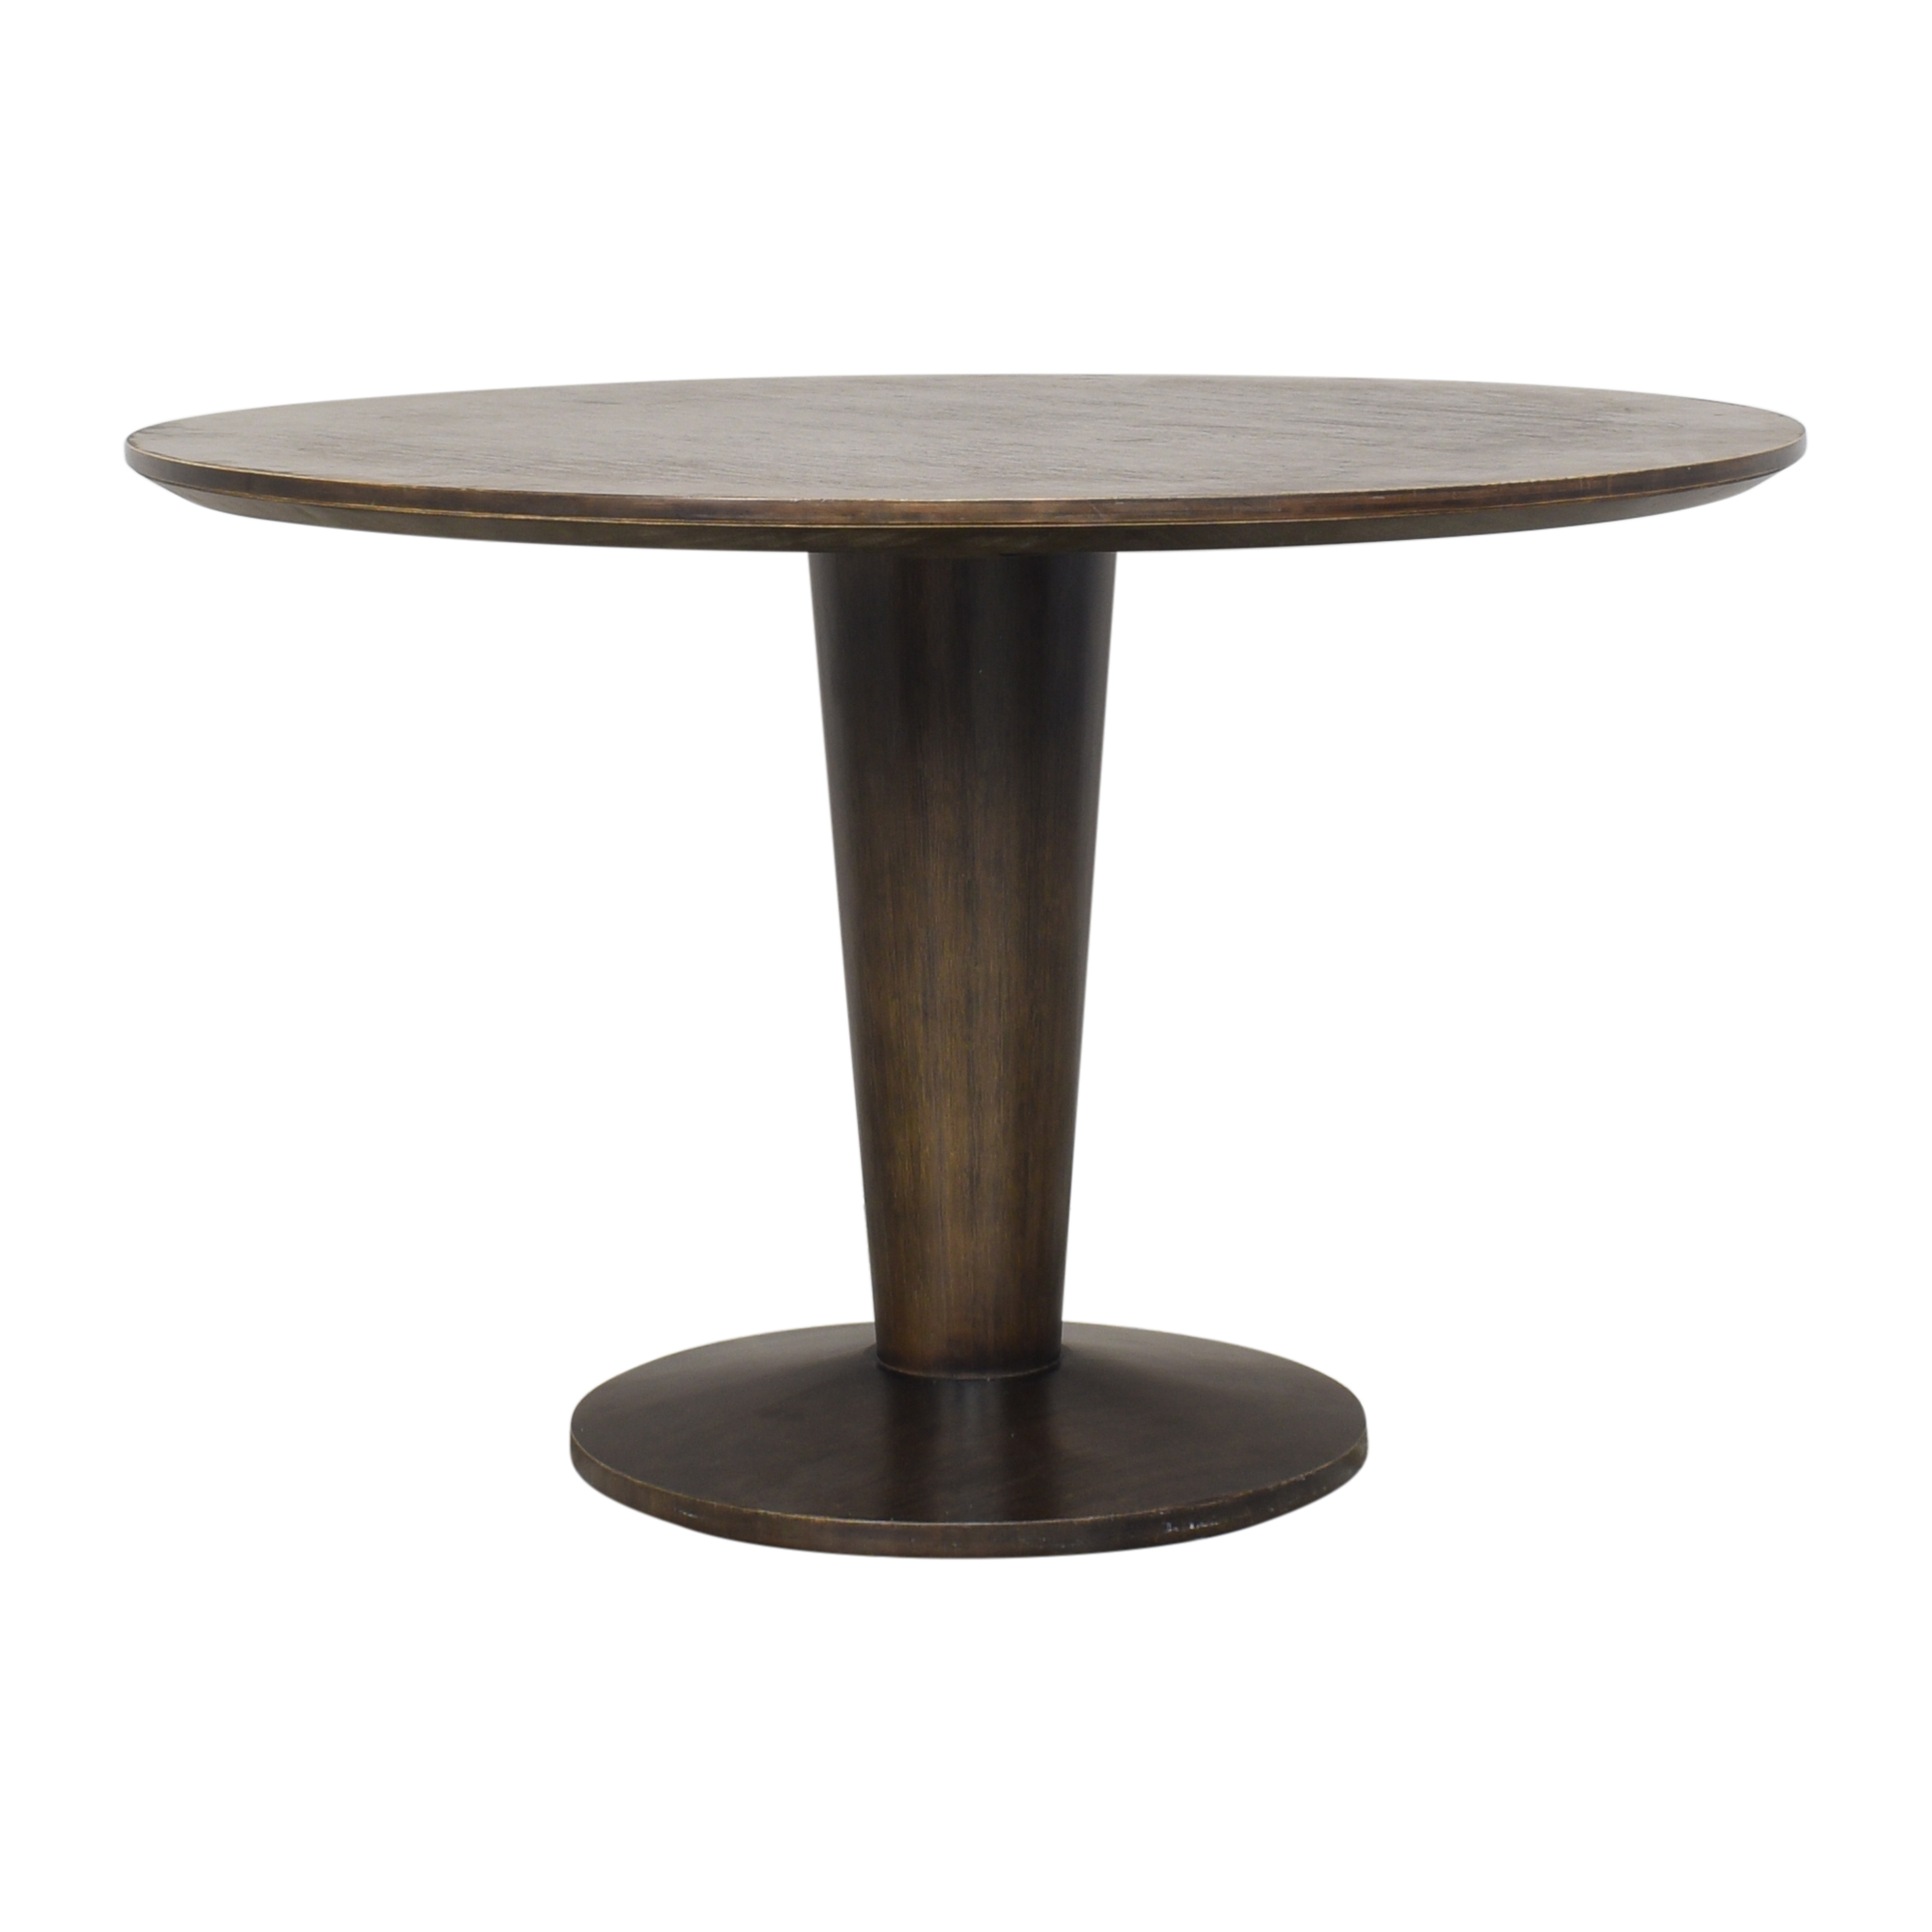 Room & Board Room & Board Maria Yee Round Dining Table for sale